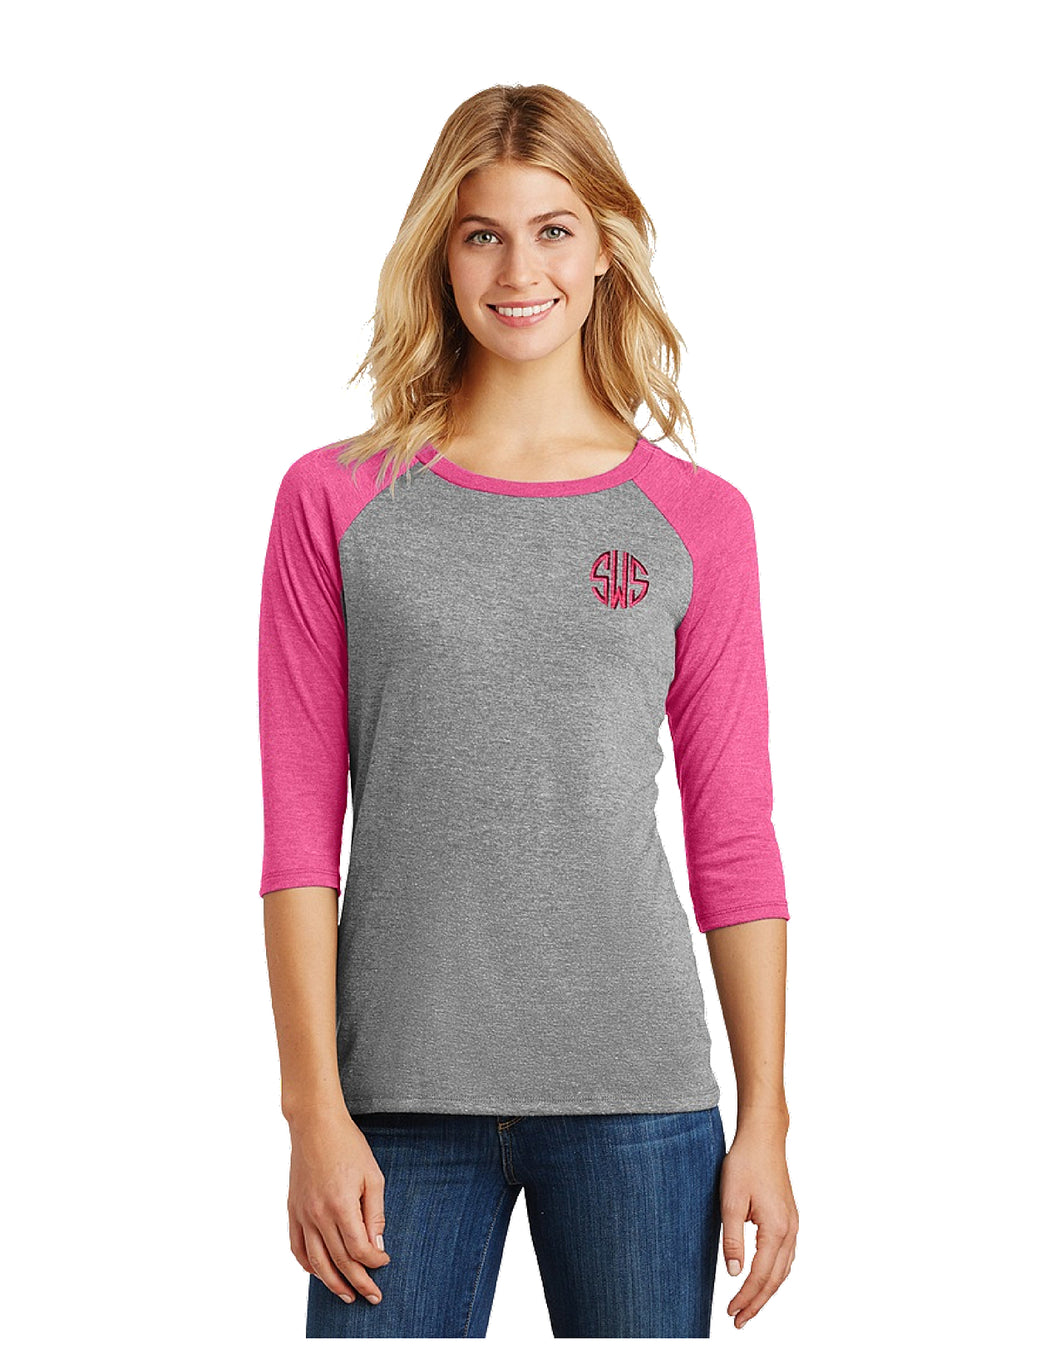 Frosted Gray and Pink Raglan